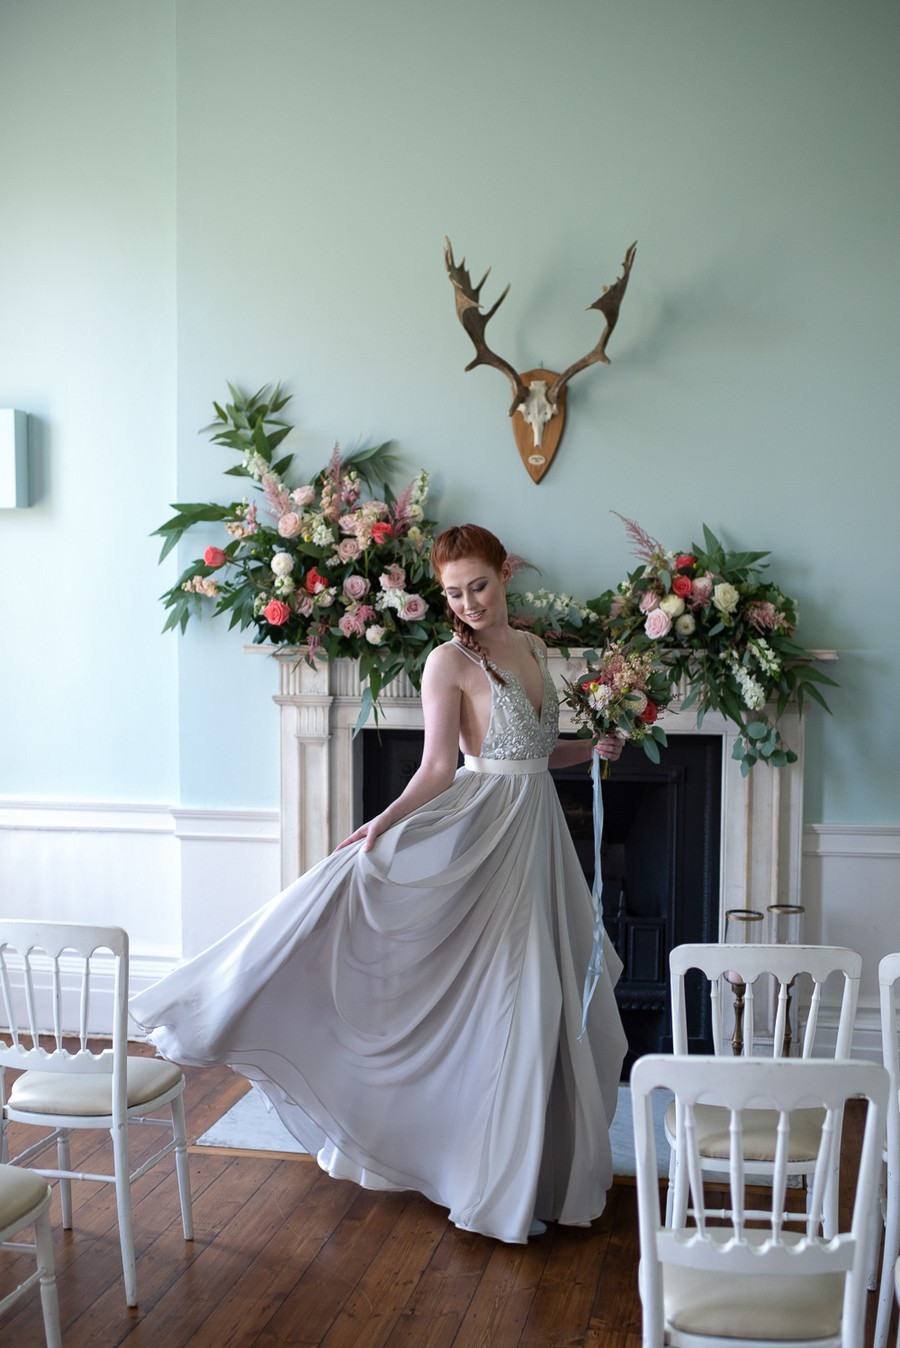 Beautiful fairytale wedding ideas from Clissold Park on English Wedding. Image credit Eva Tarnok Photography (19)